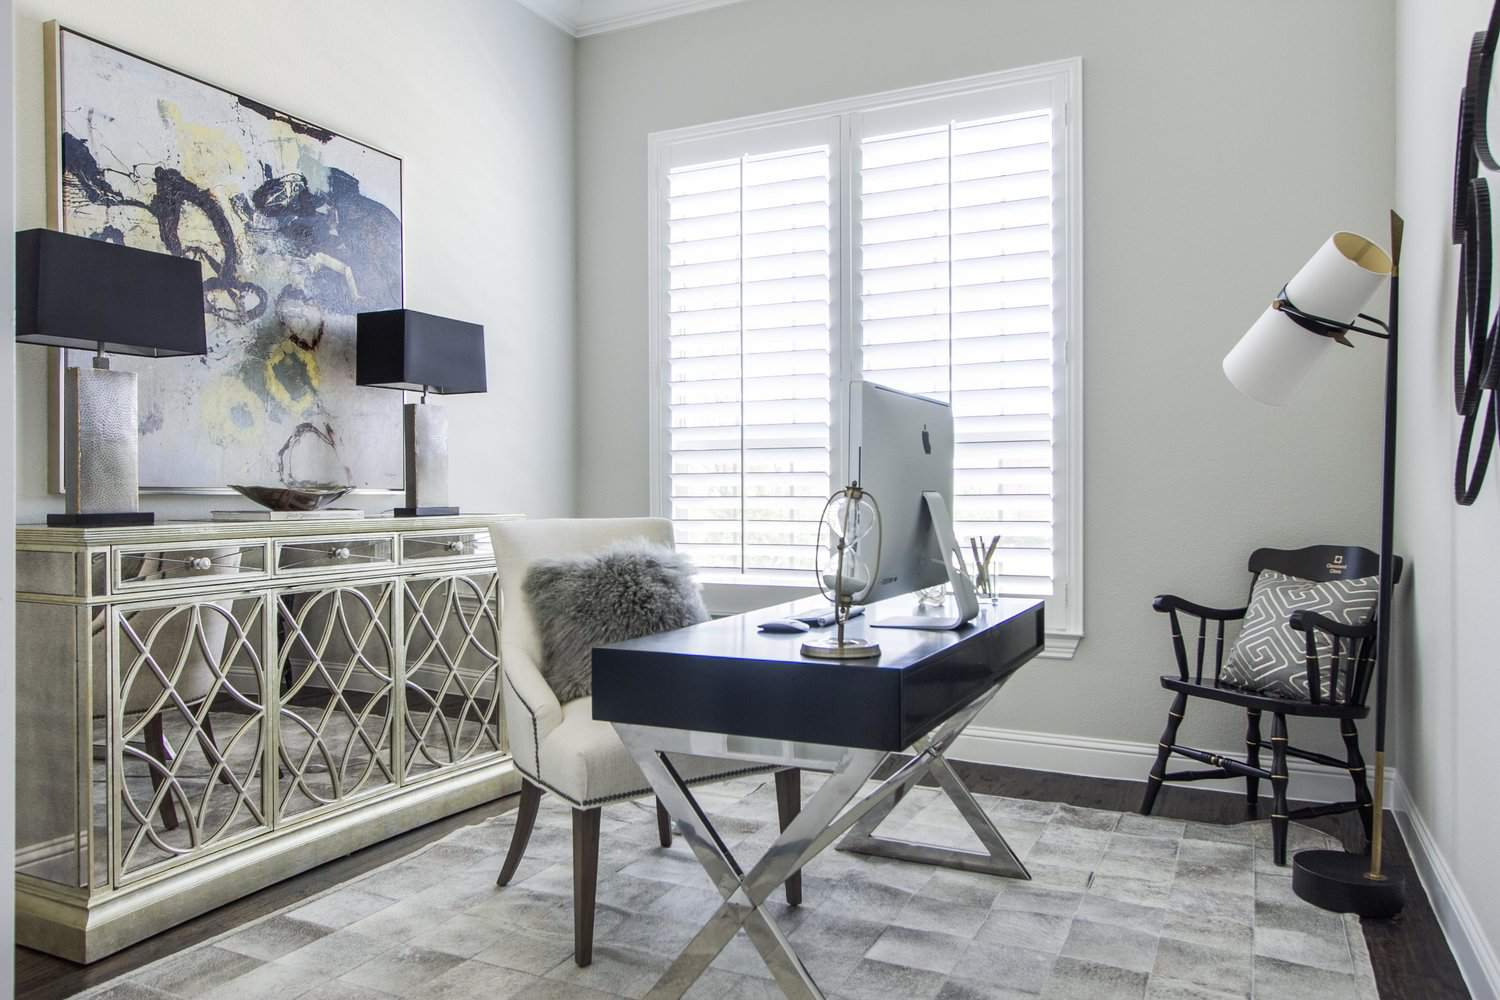 19 Ways To Decorate With Mirrored Furniture